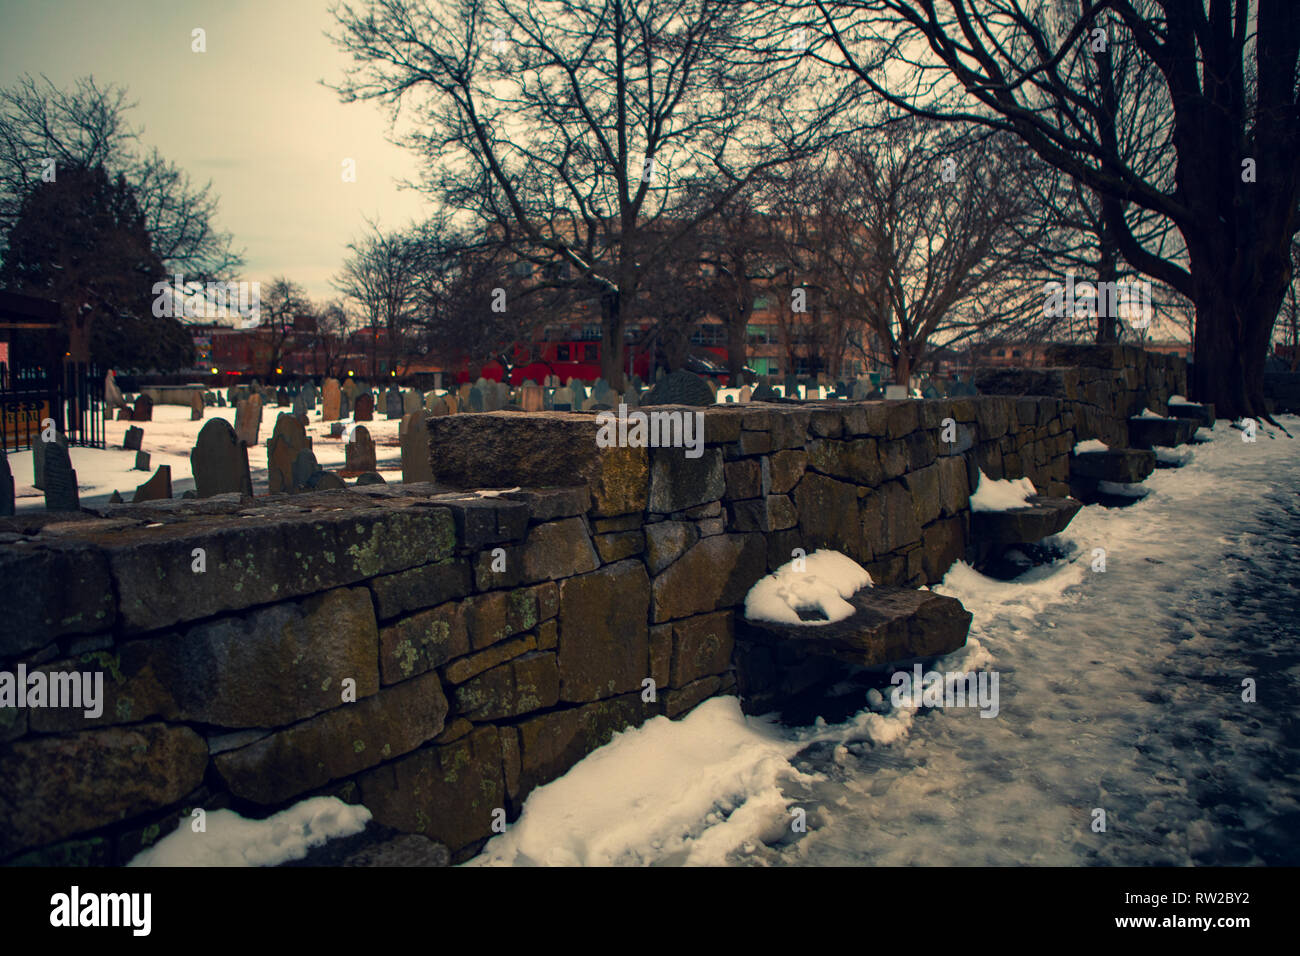 The Burying Point Cemetery, also known as Charter Street Cemetery, dates back to at least 1637. A resting place for many historical people, Richard Mo - Stock Image